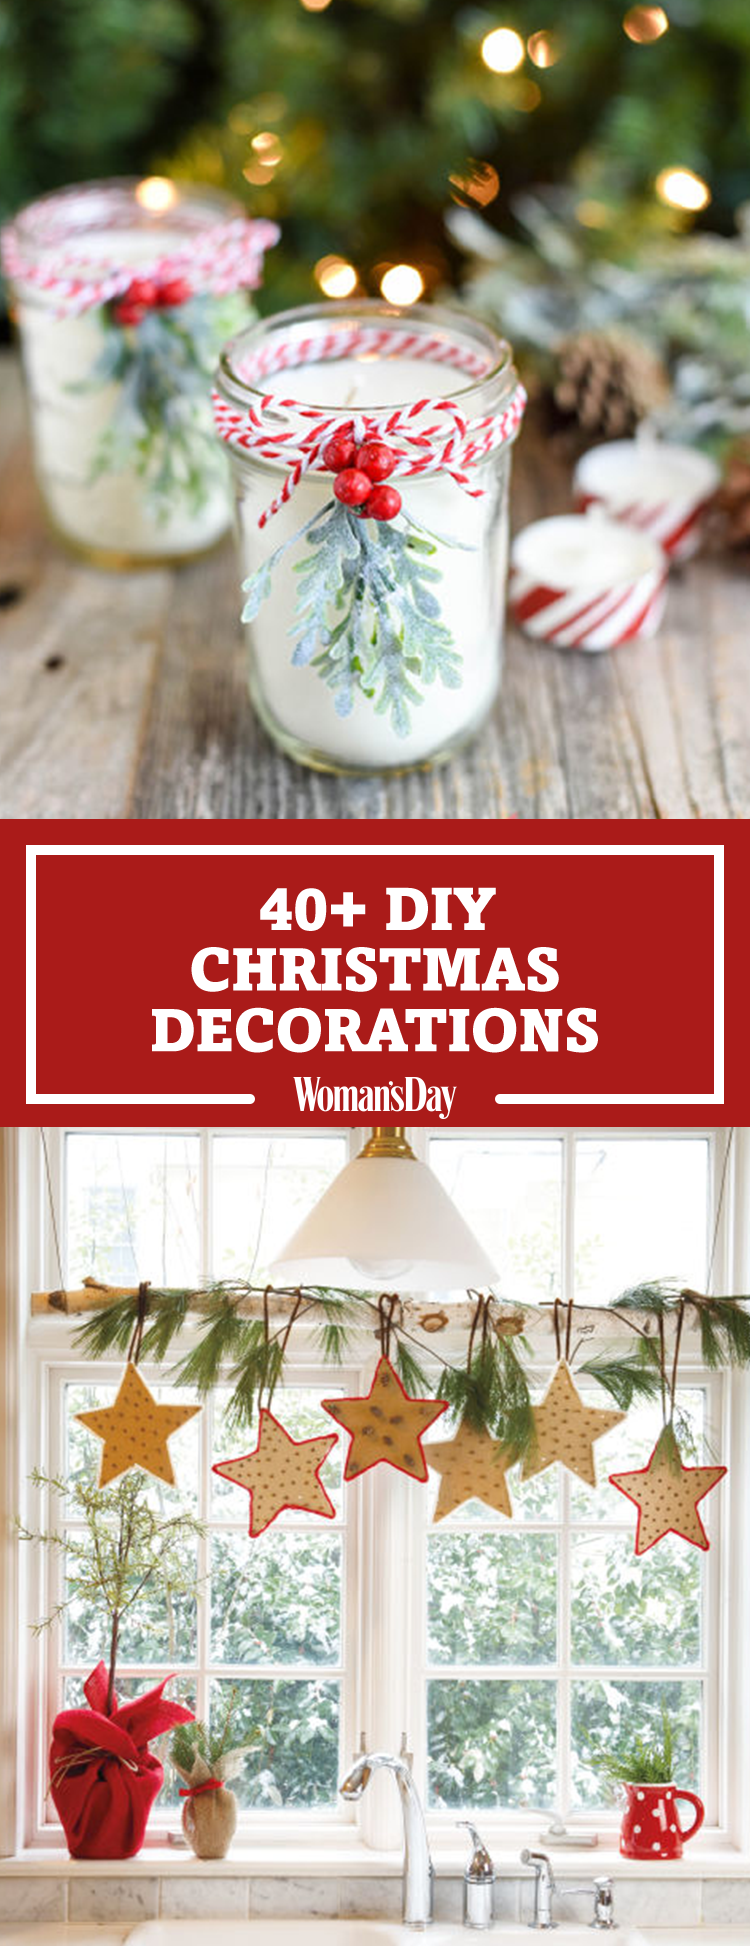 47 easy diy christmas decorations homemade ideas for holiday 47 easy diy christmas decorations homemade ideas for holiday decorating solutioingenieria